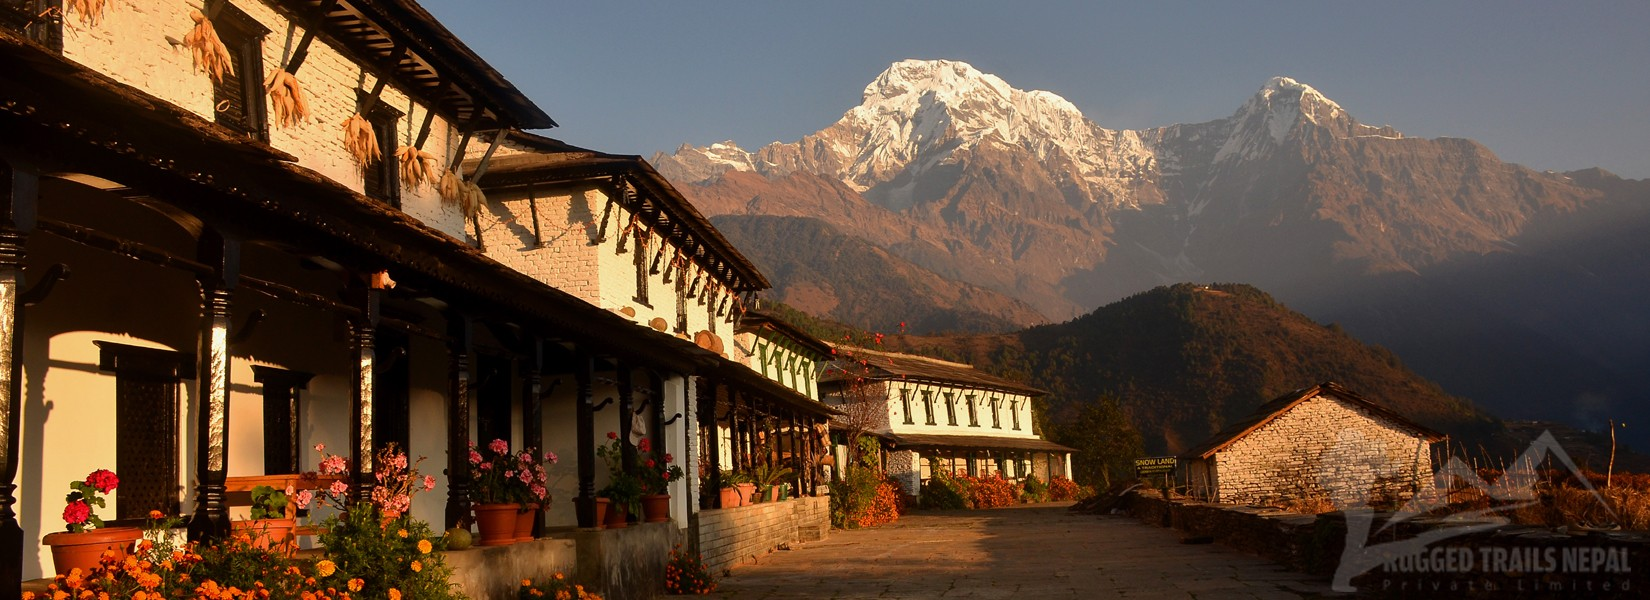 nepal mountain tour package